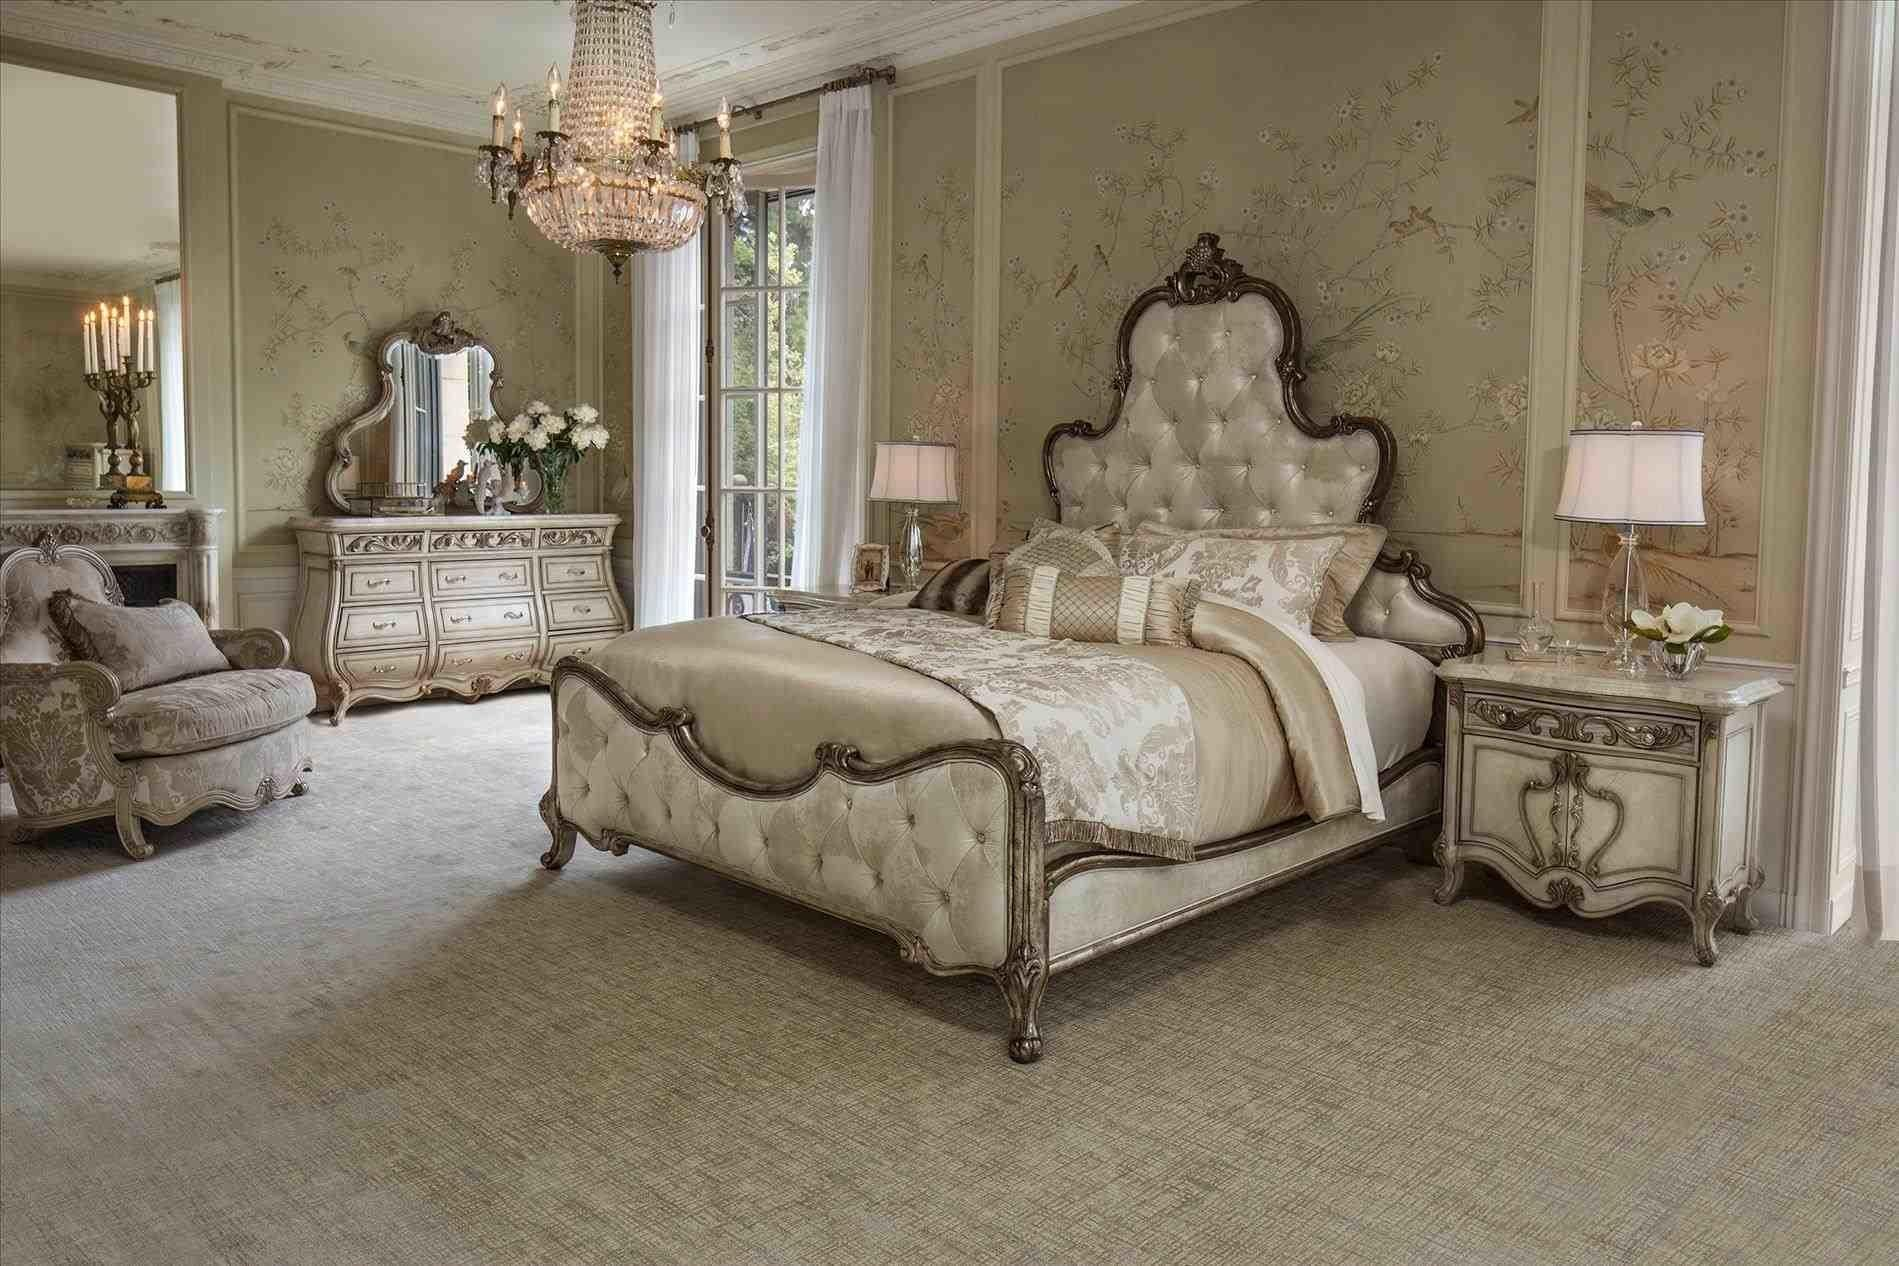 Bedrooms Style Bedroom Decorating Ideas Home Design